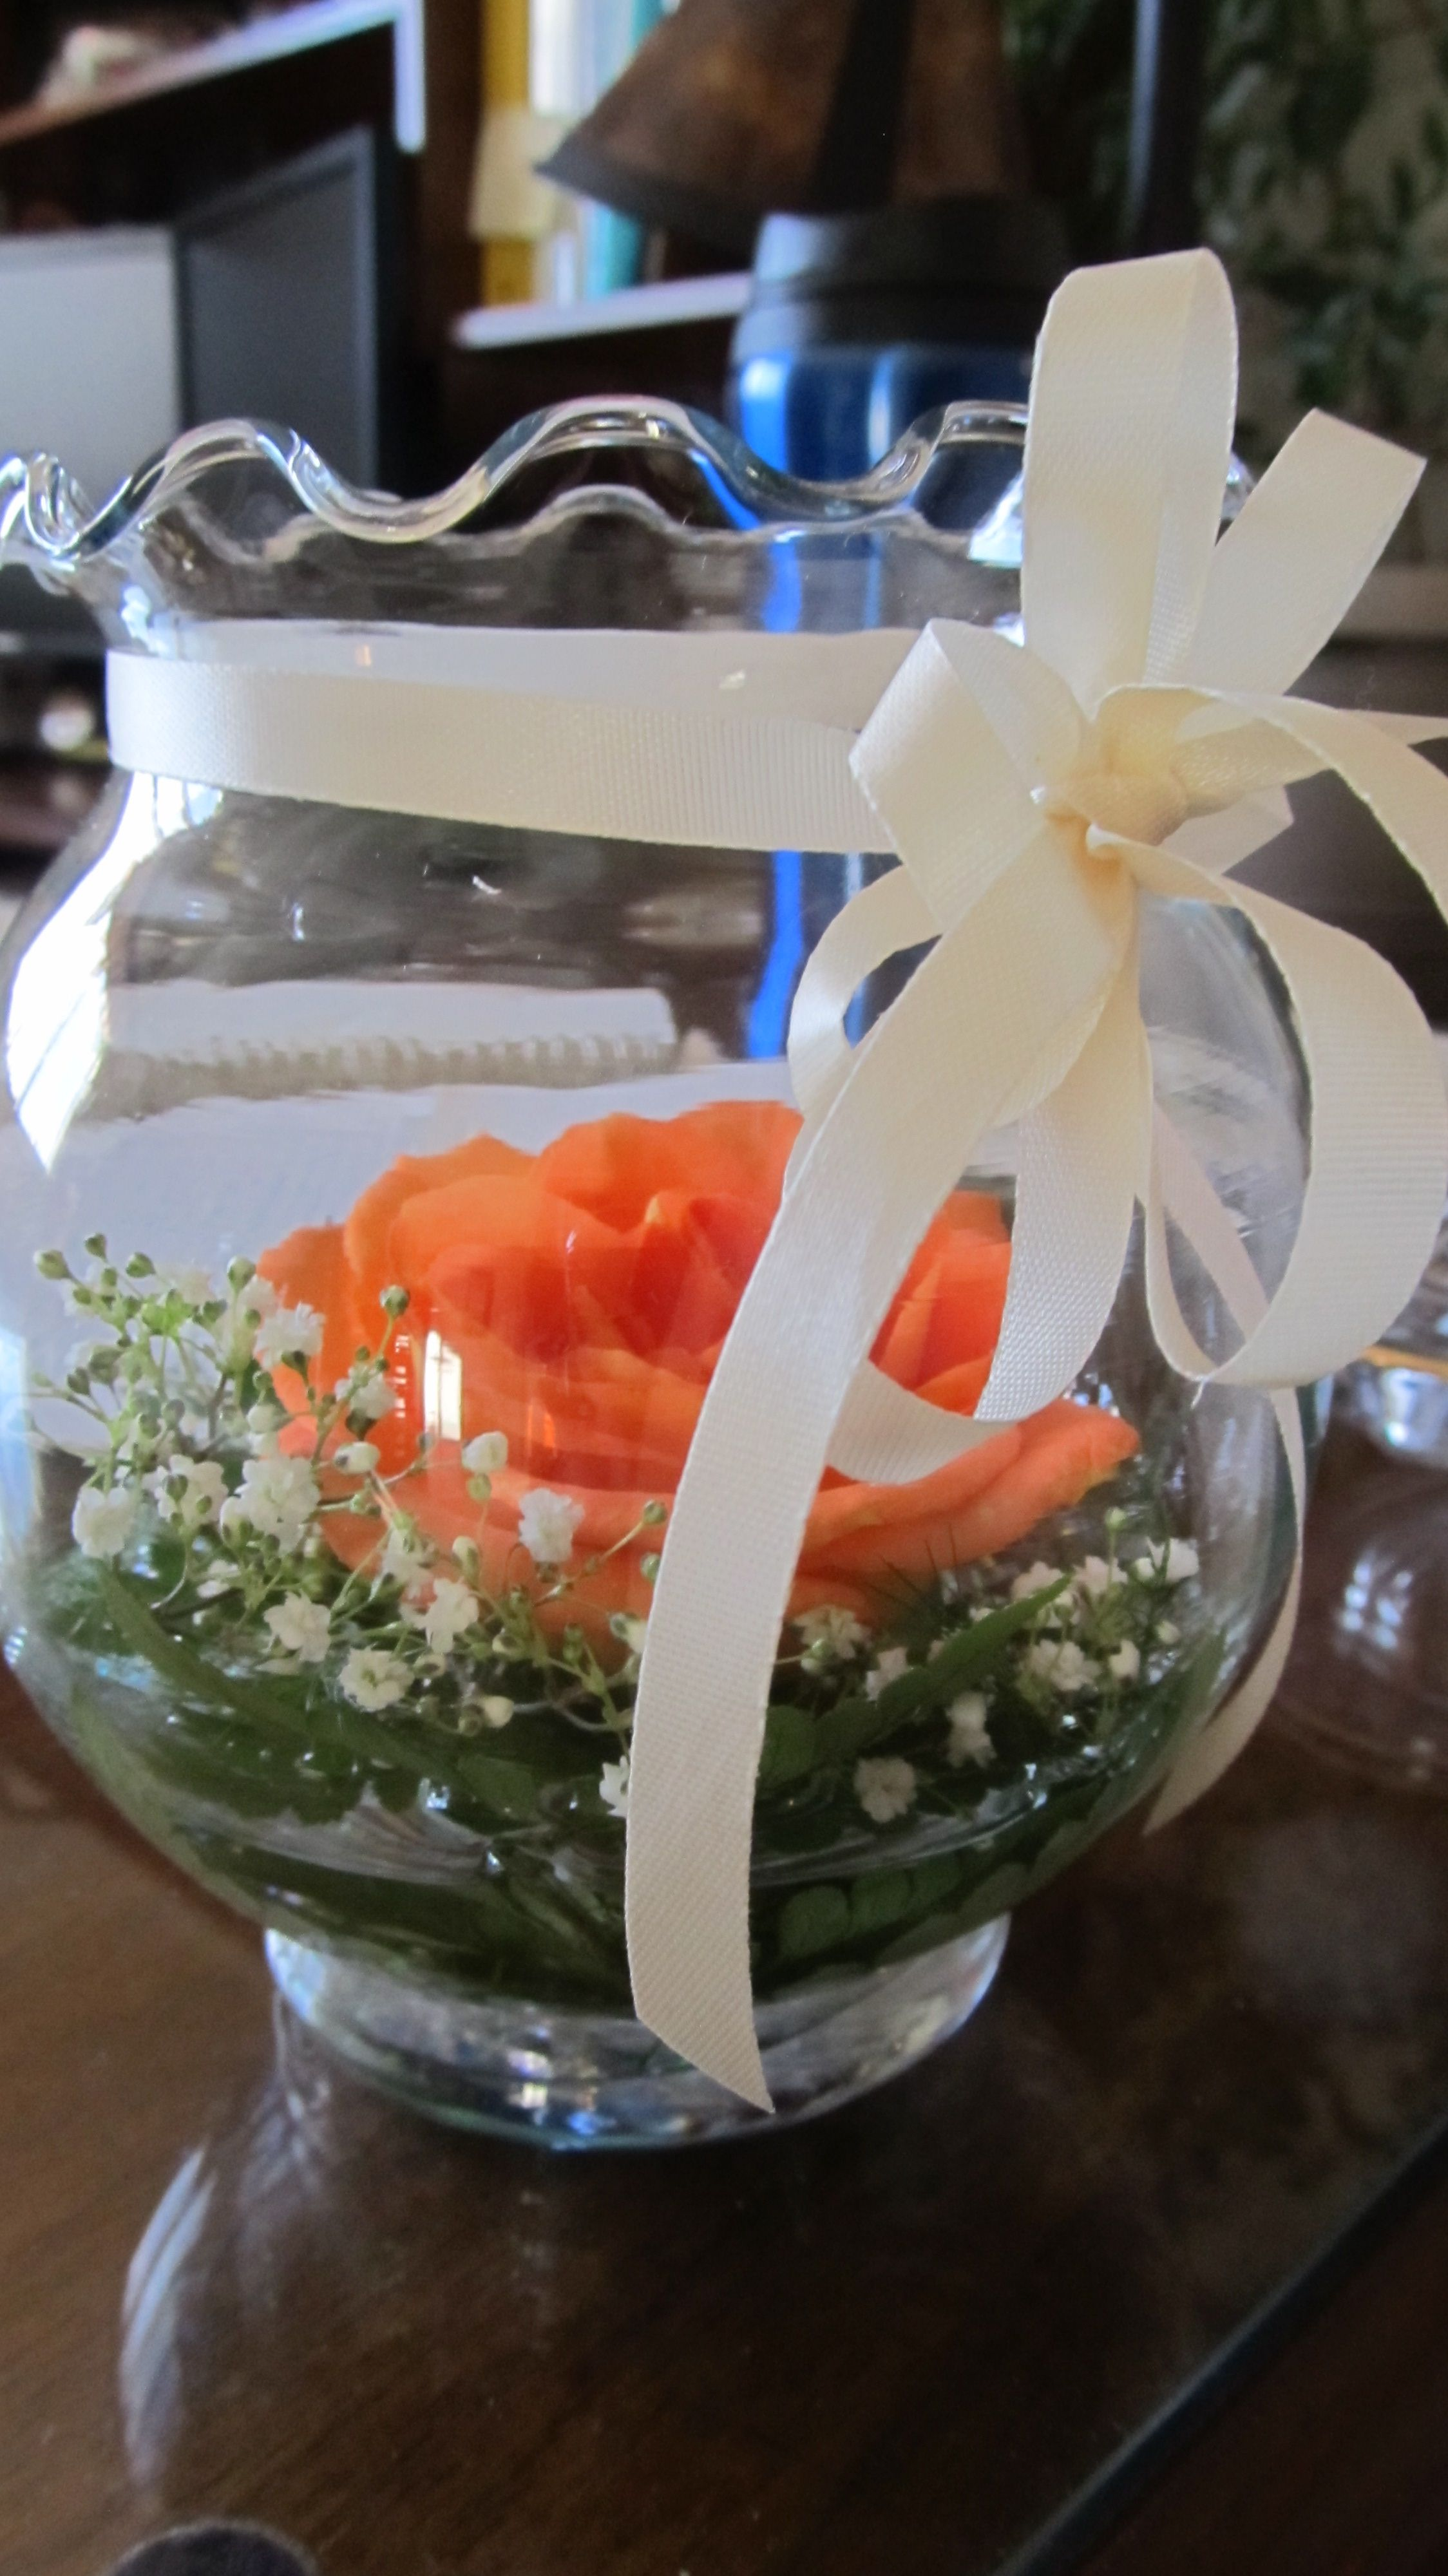 Such A Cute Simple Centerpiece Decoration Idea And To Make It